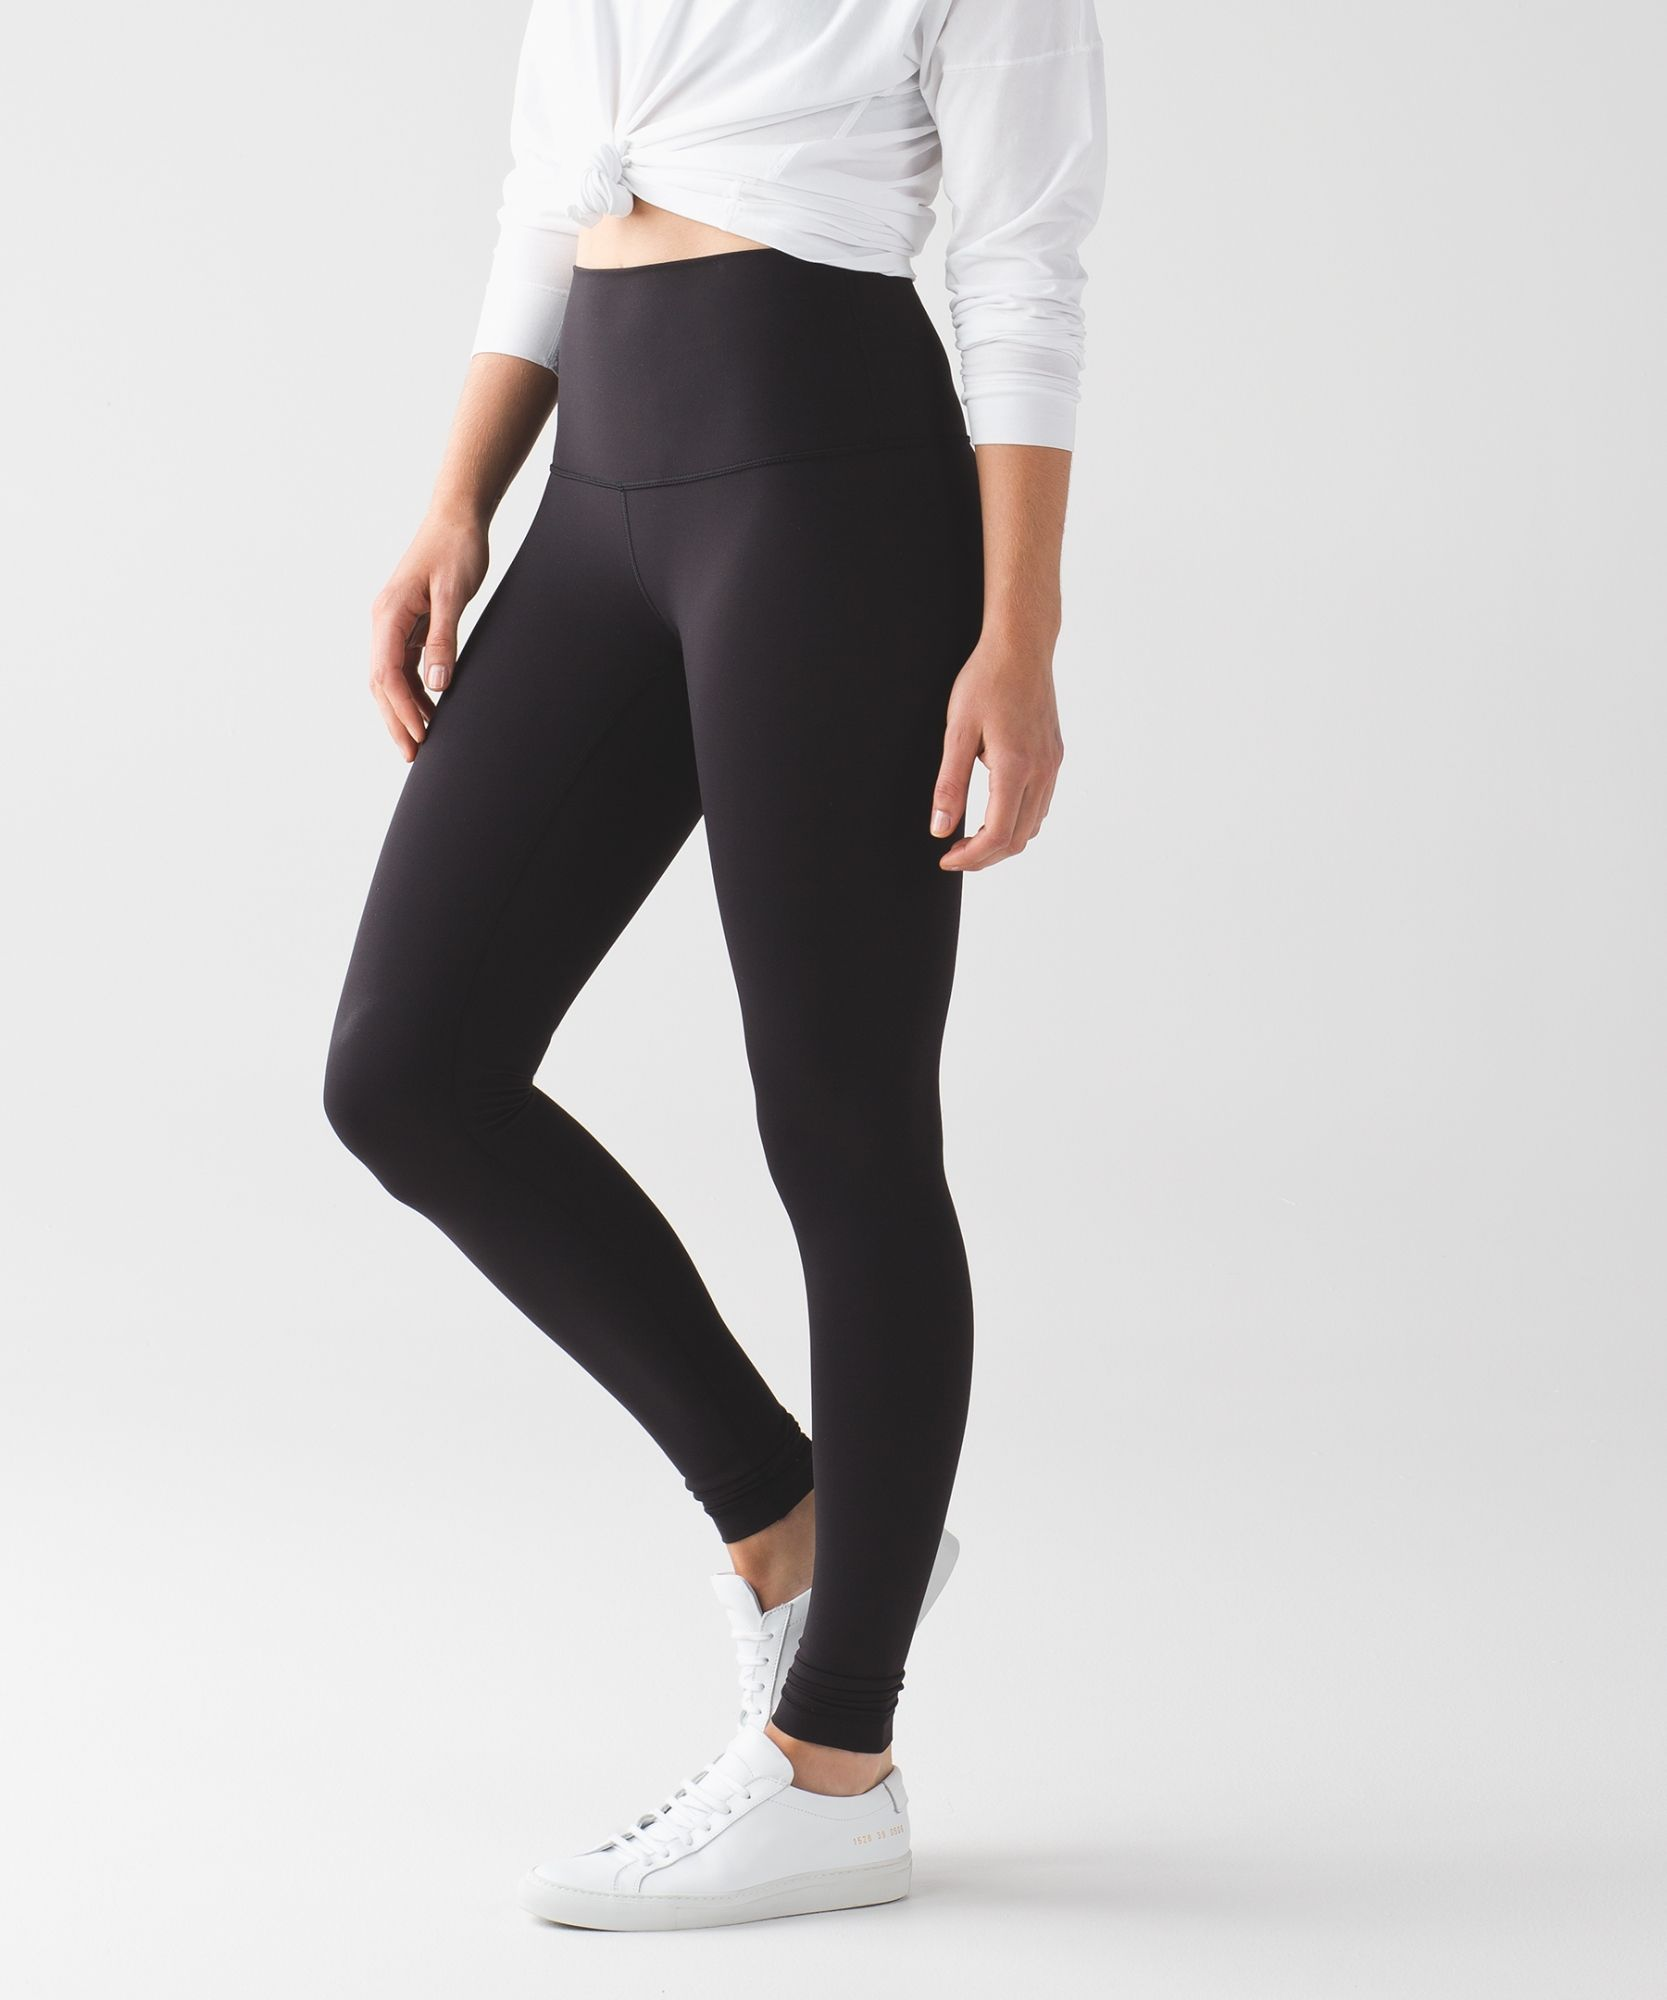 4fd0afb2f9507 These versatile, high-rise pants were designed to fit like a second  skin—perfect for yoga or the gym